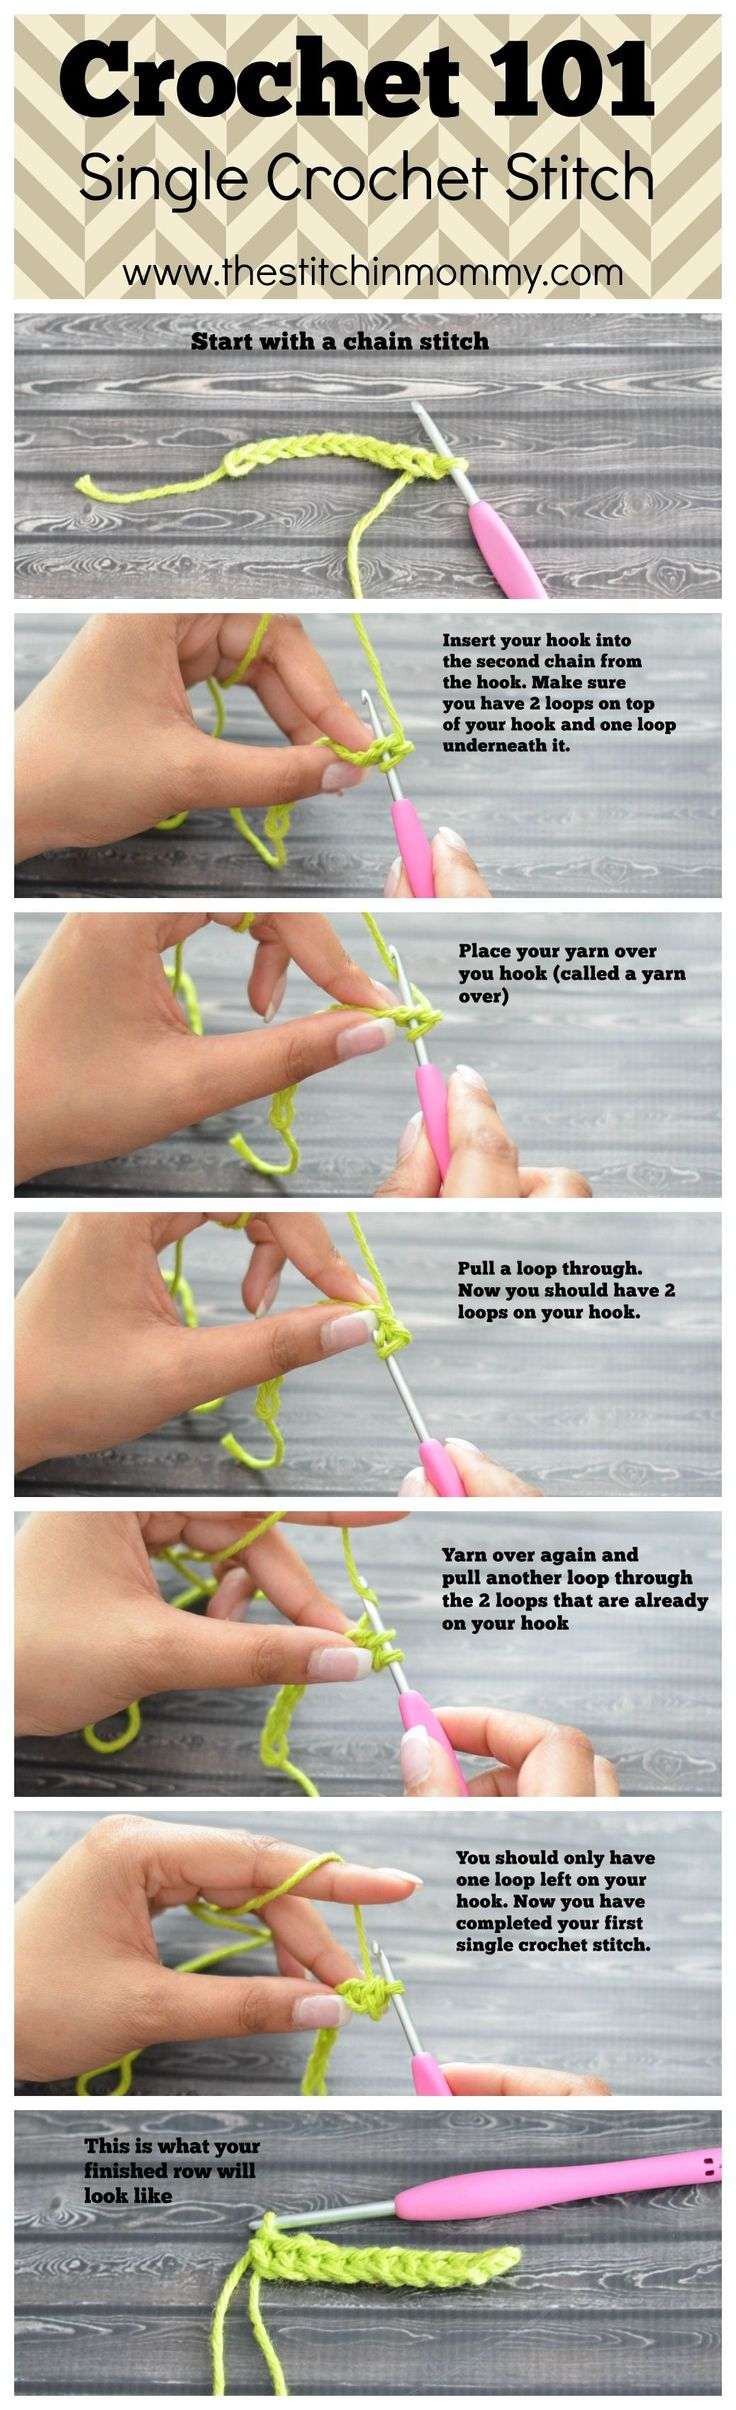 Crochet 101 - Single Crochet Stitch Tutorial {www.thestitchinmommy.com} ✿⊱╮Teresa Restegui http://www.pinterest.com/teretegui/✿⊱╮